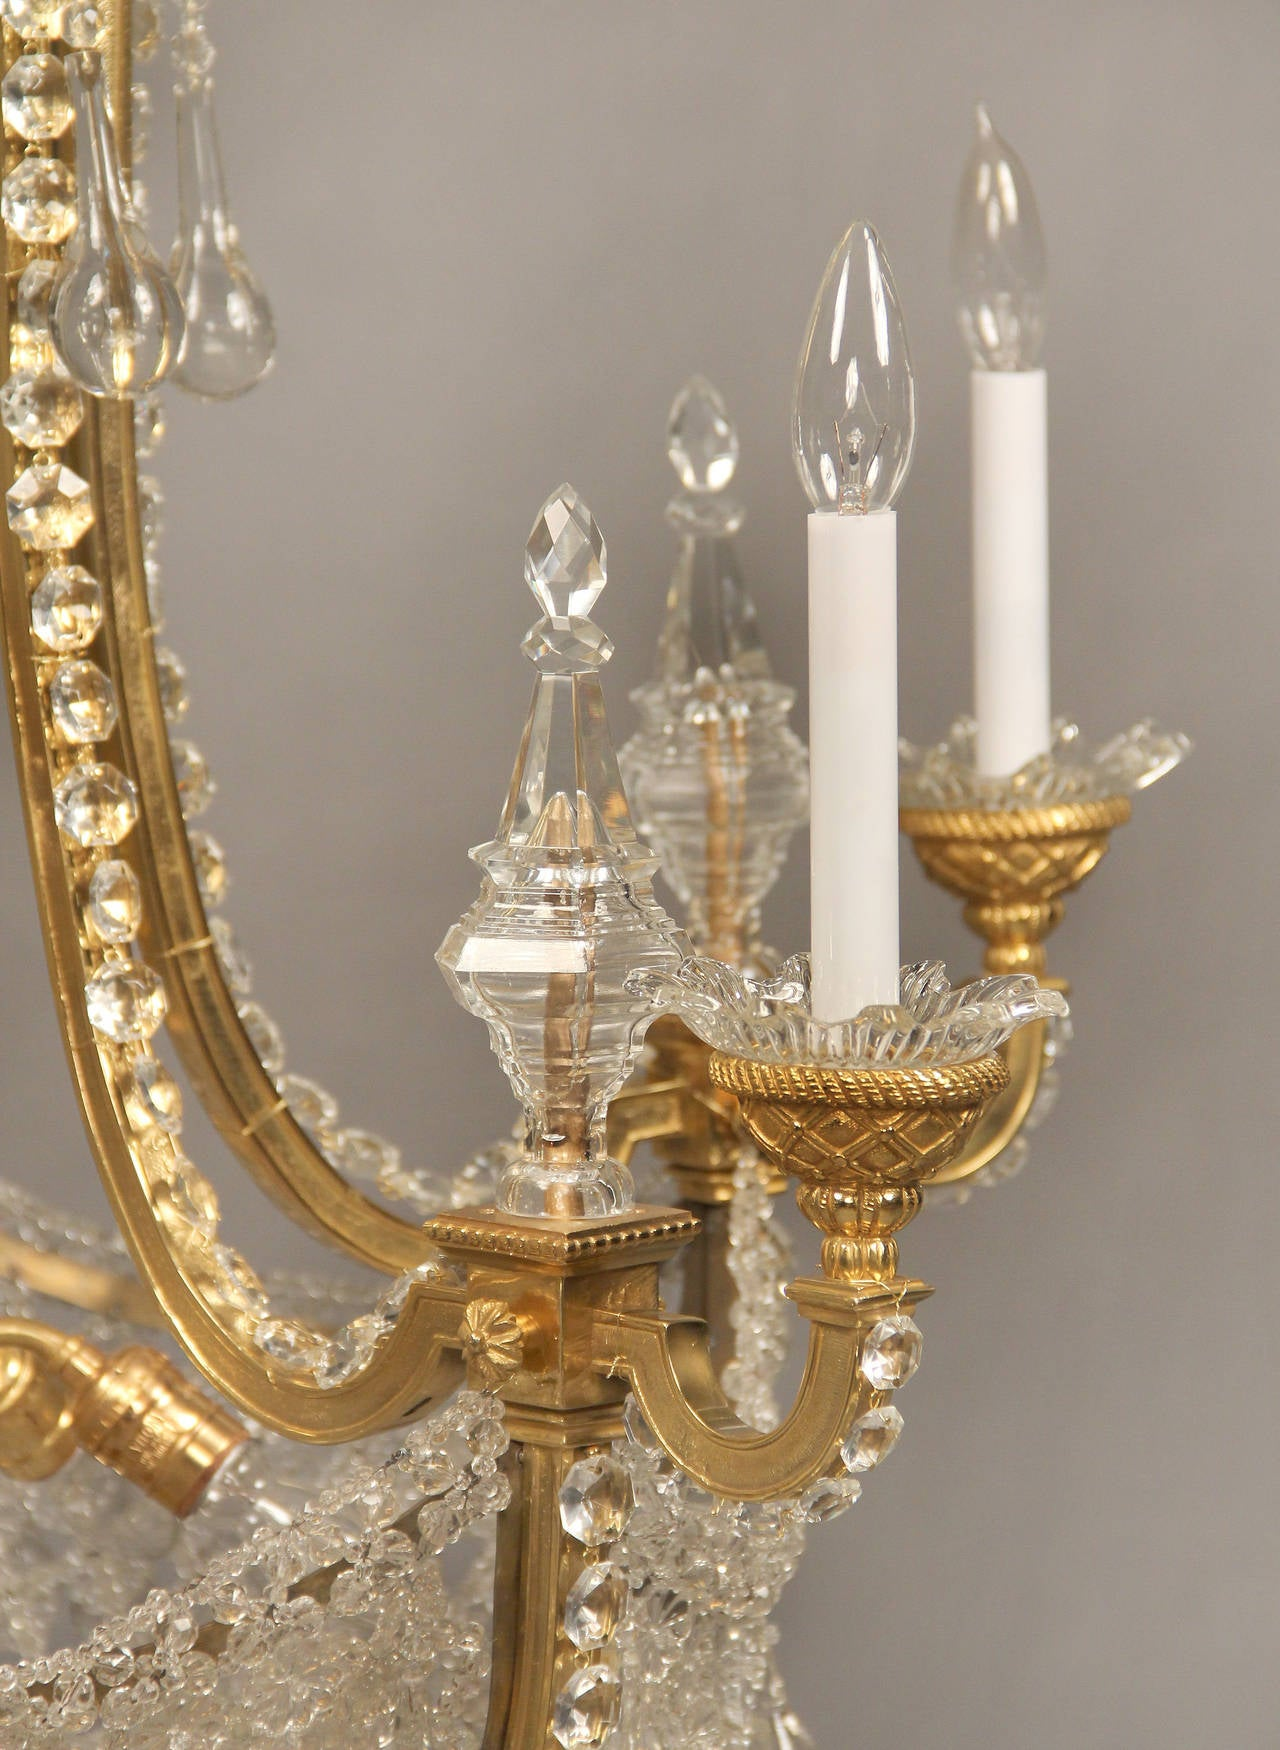 Belle Époque Wonderful Late 19th Century Gilt Bronze and Beaded Chandelier For Sale